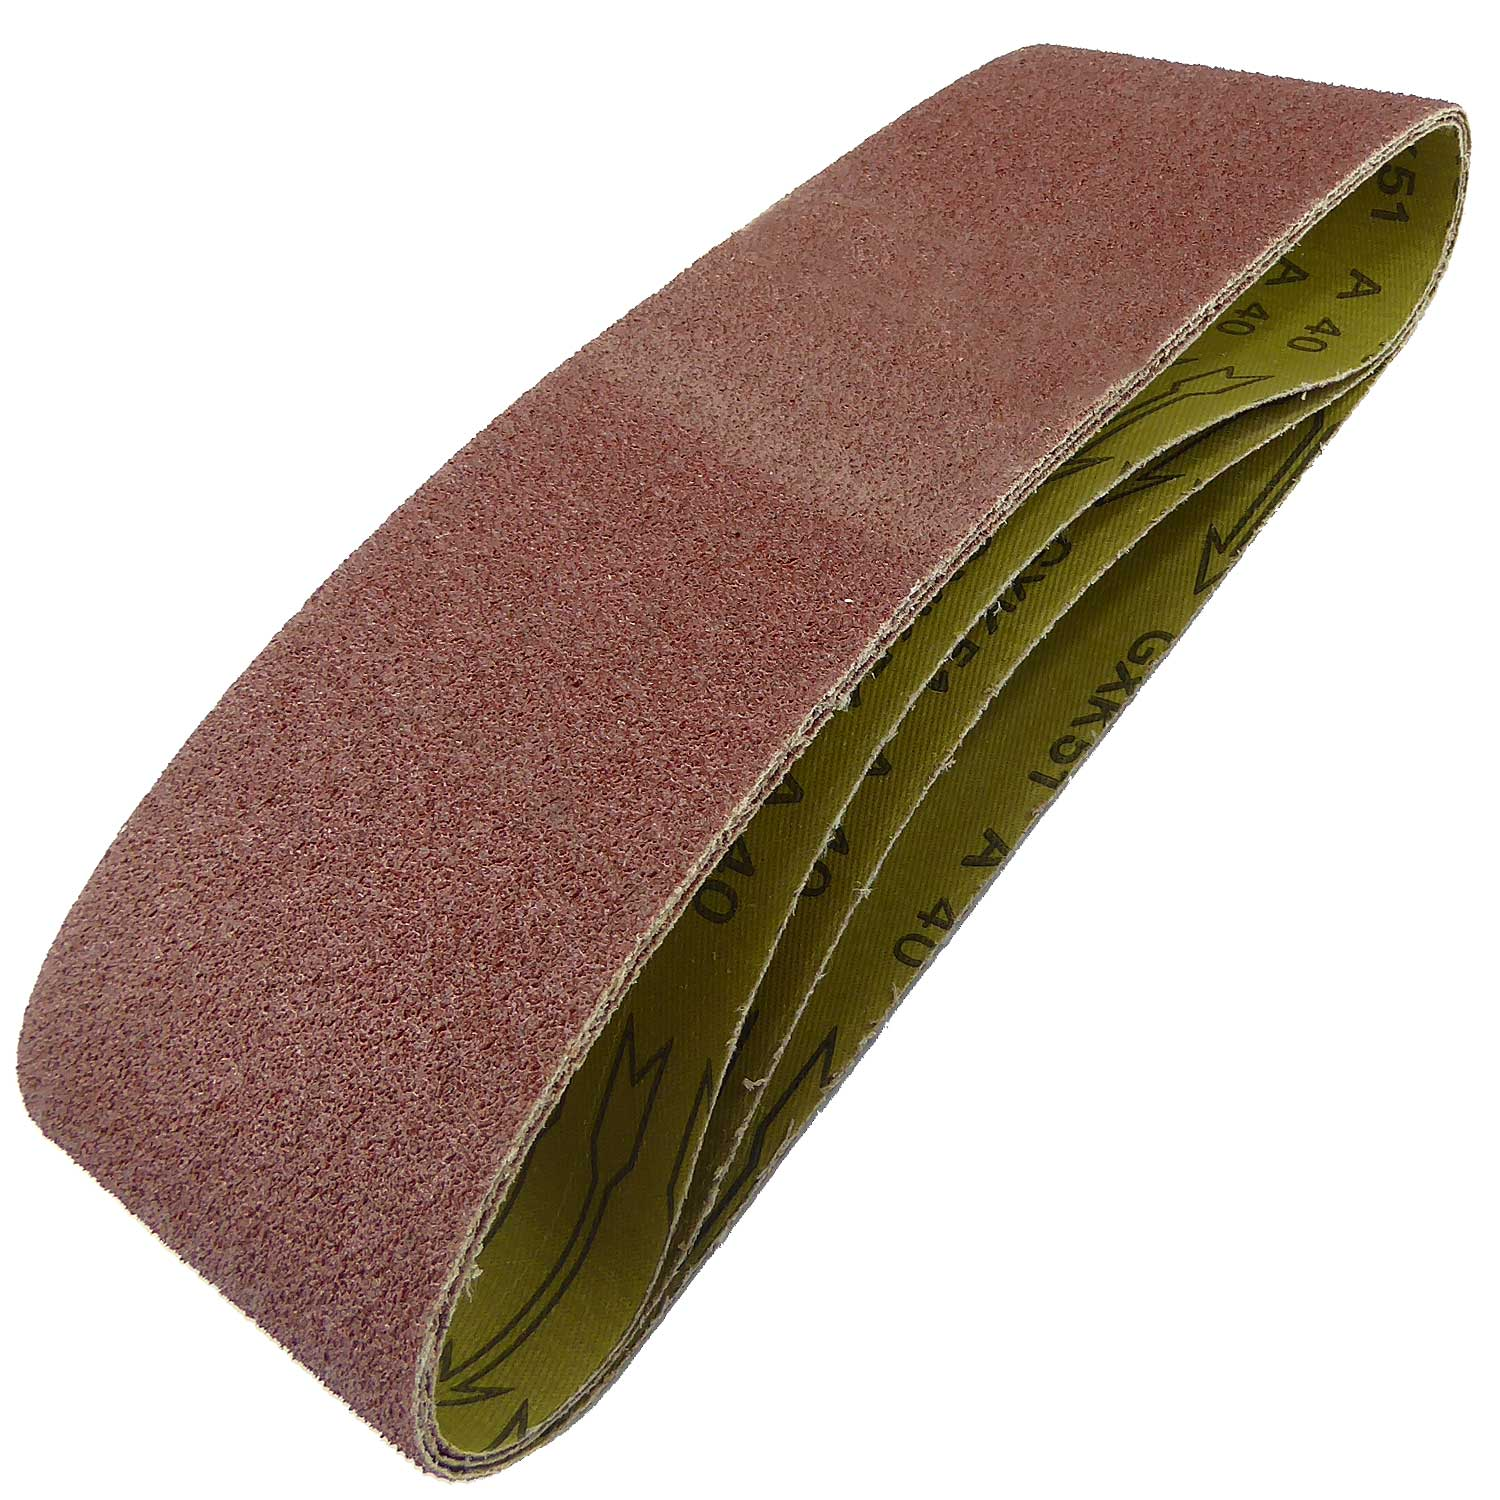 100mm x 610mm Sanding Belt 40 Grit Pack of 3